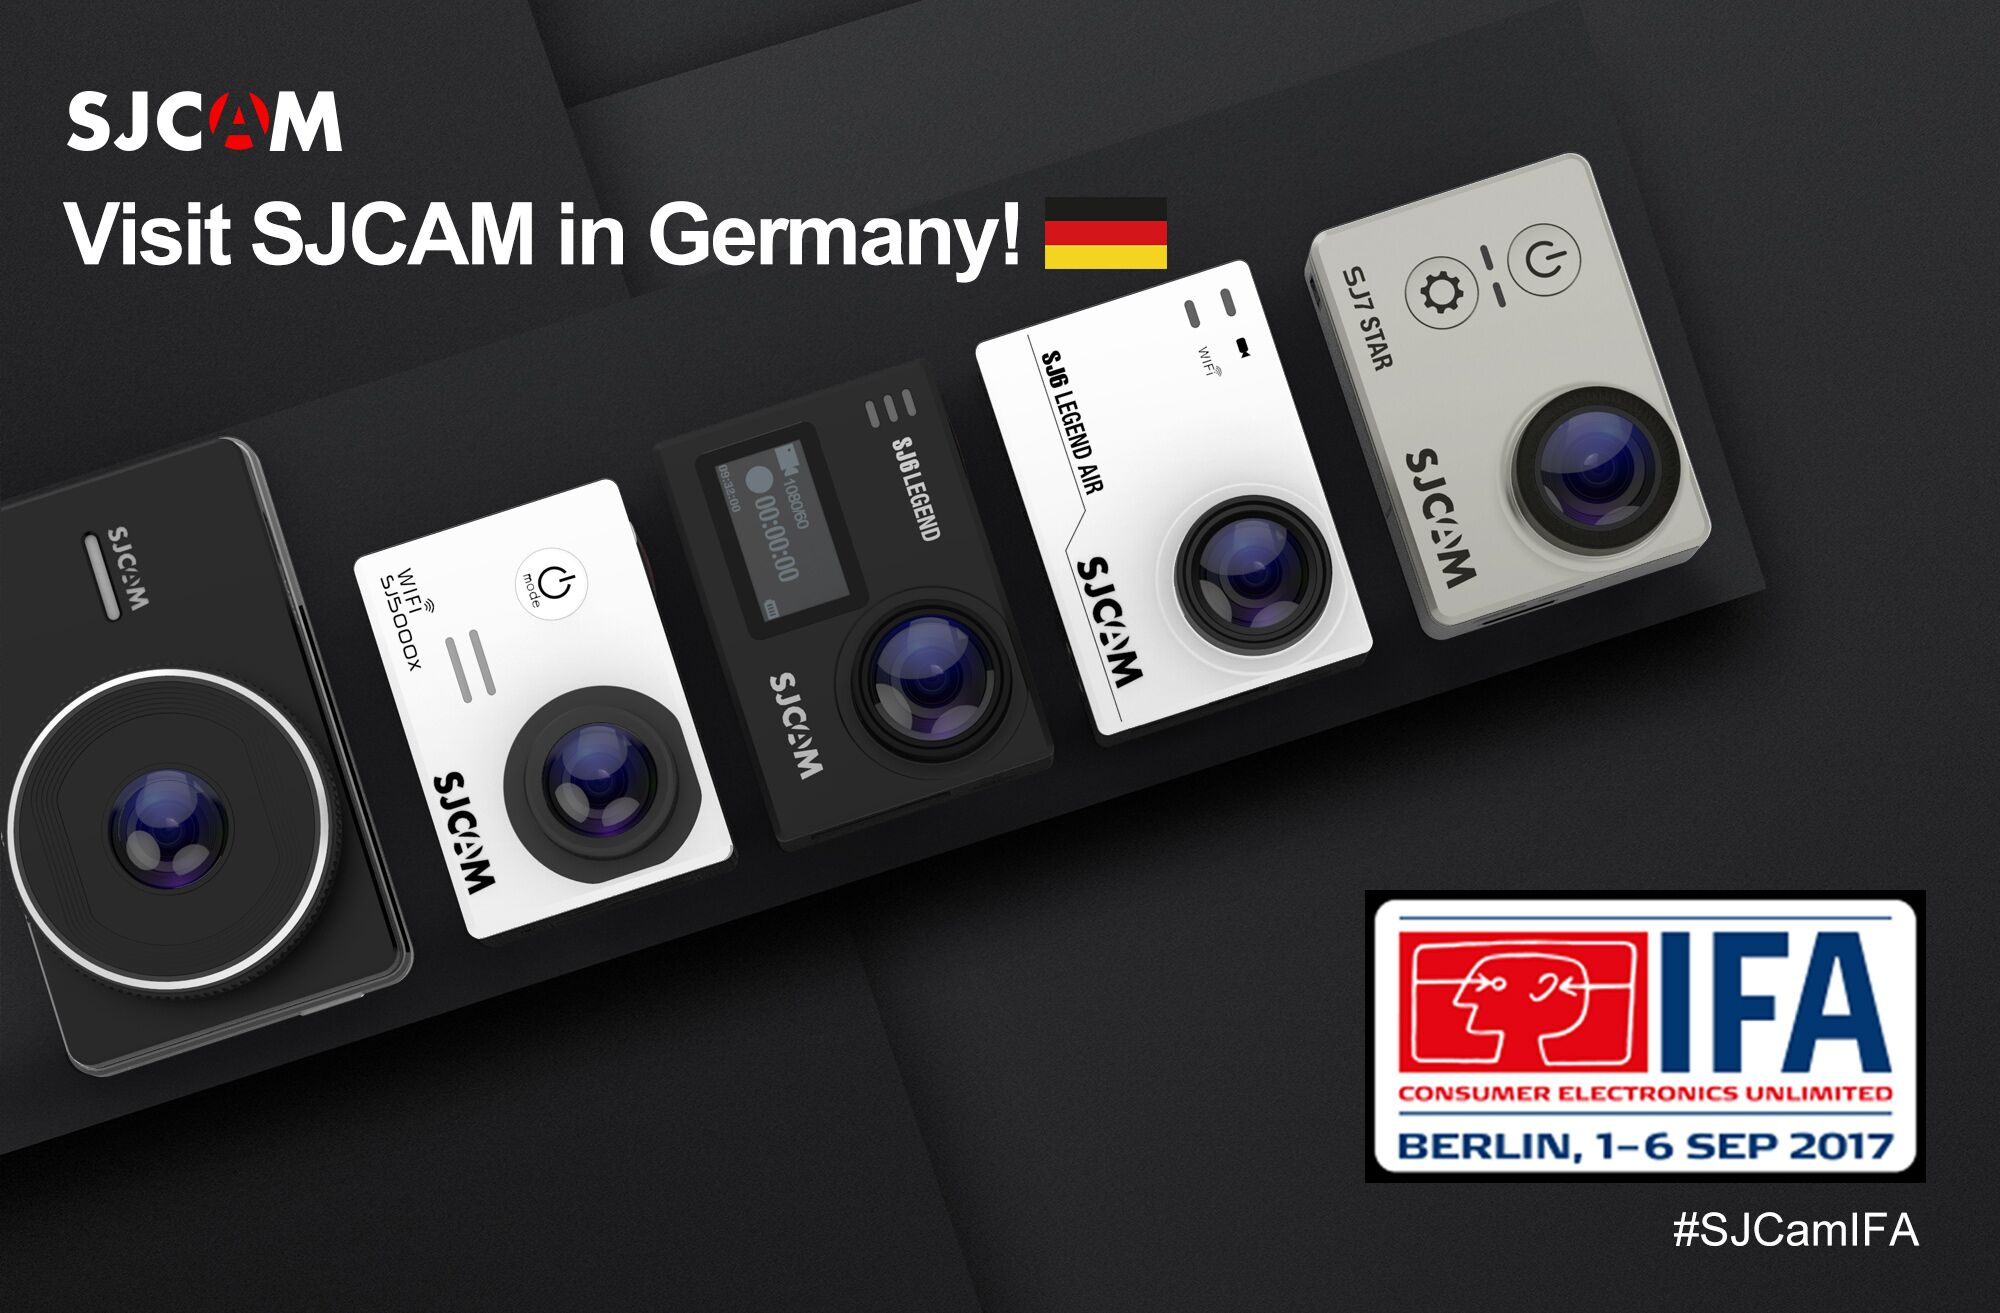 SJCAM at IFA in Berlin 2017